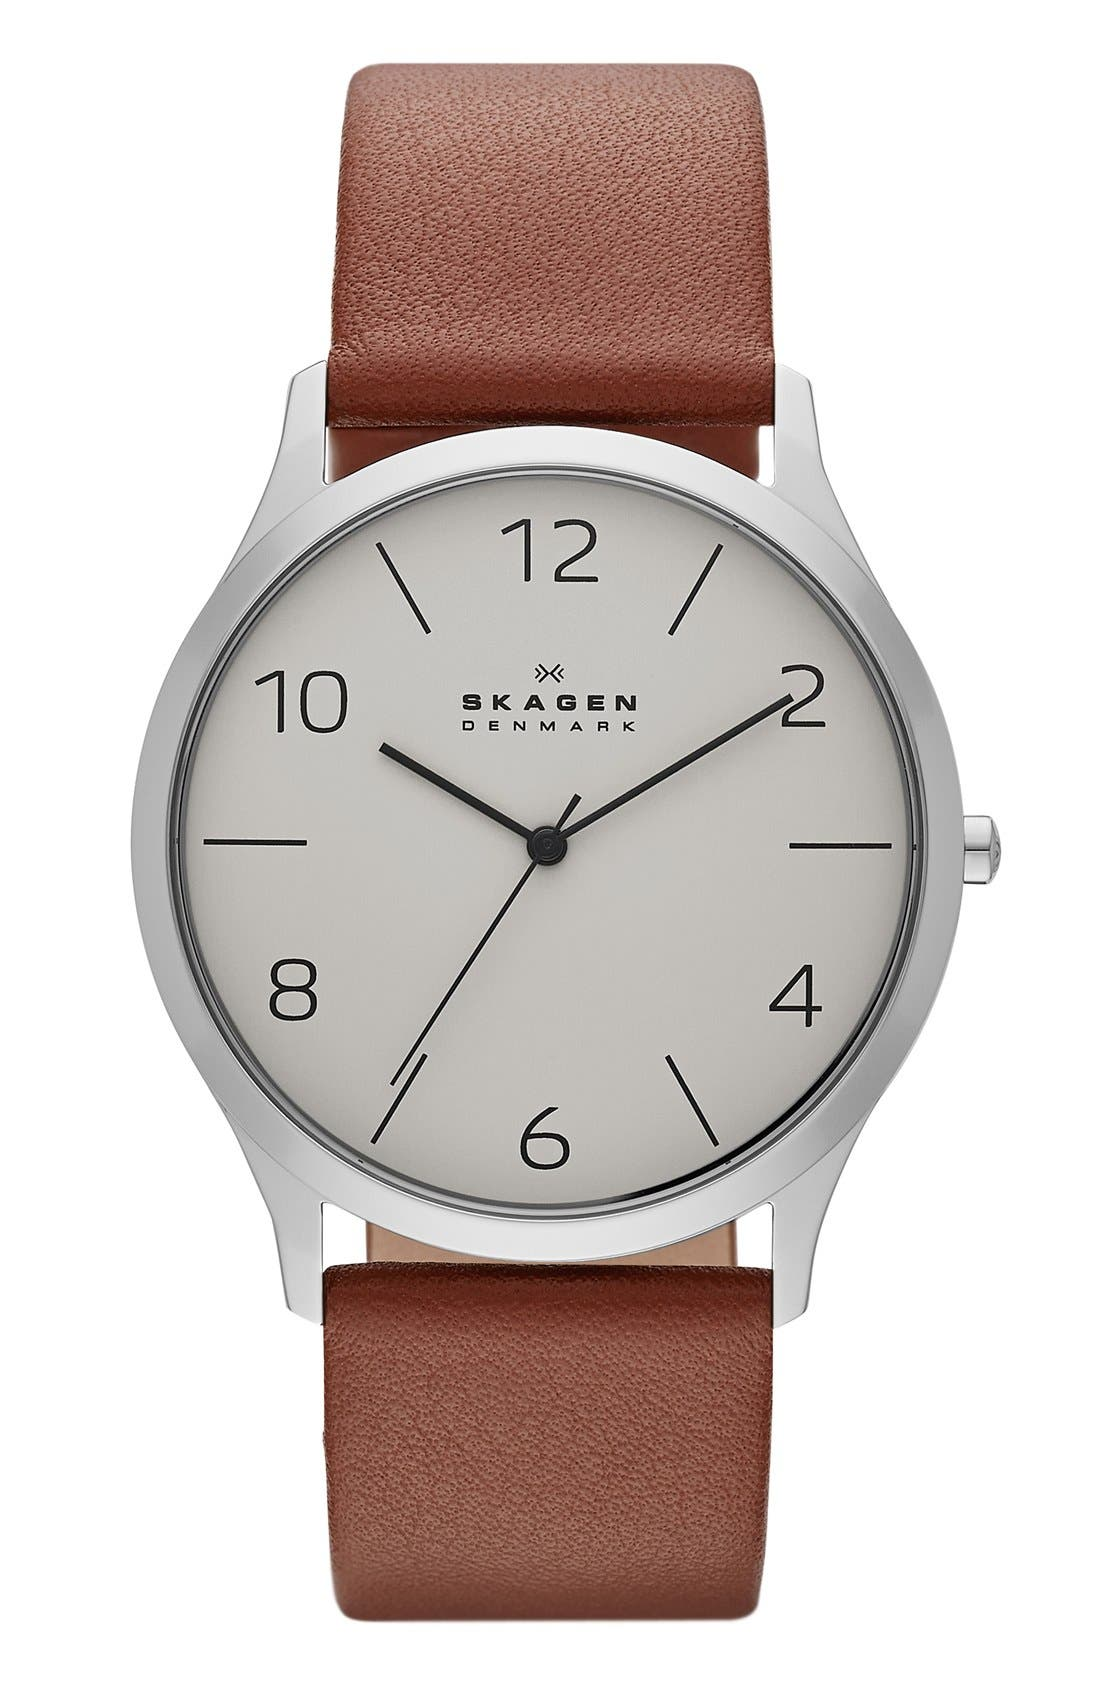 Main Image - Skagen 'Jorn' Leather Strap Watch, 41mm